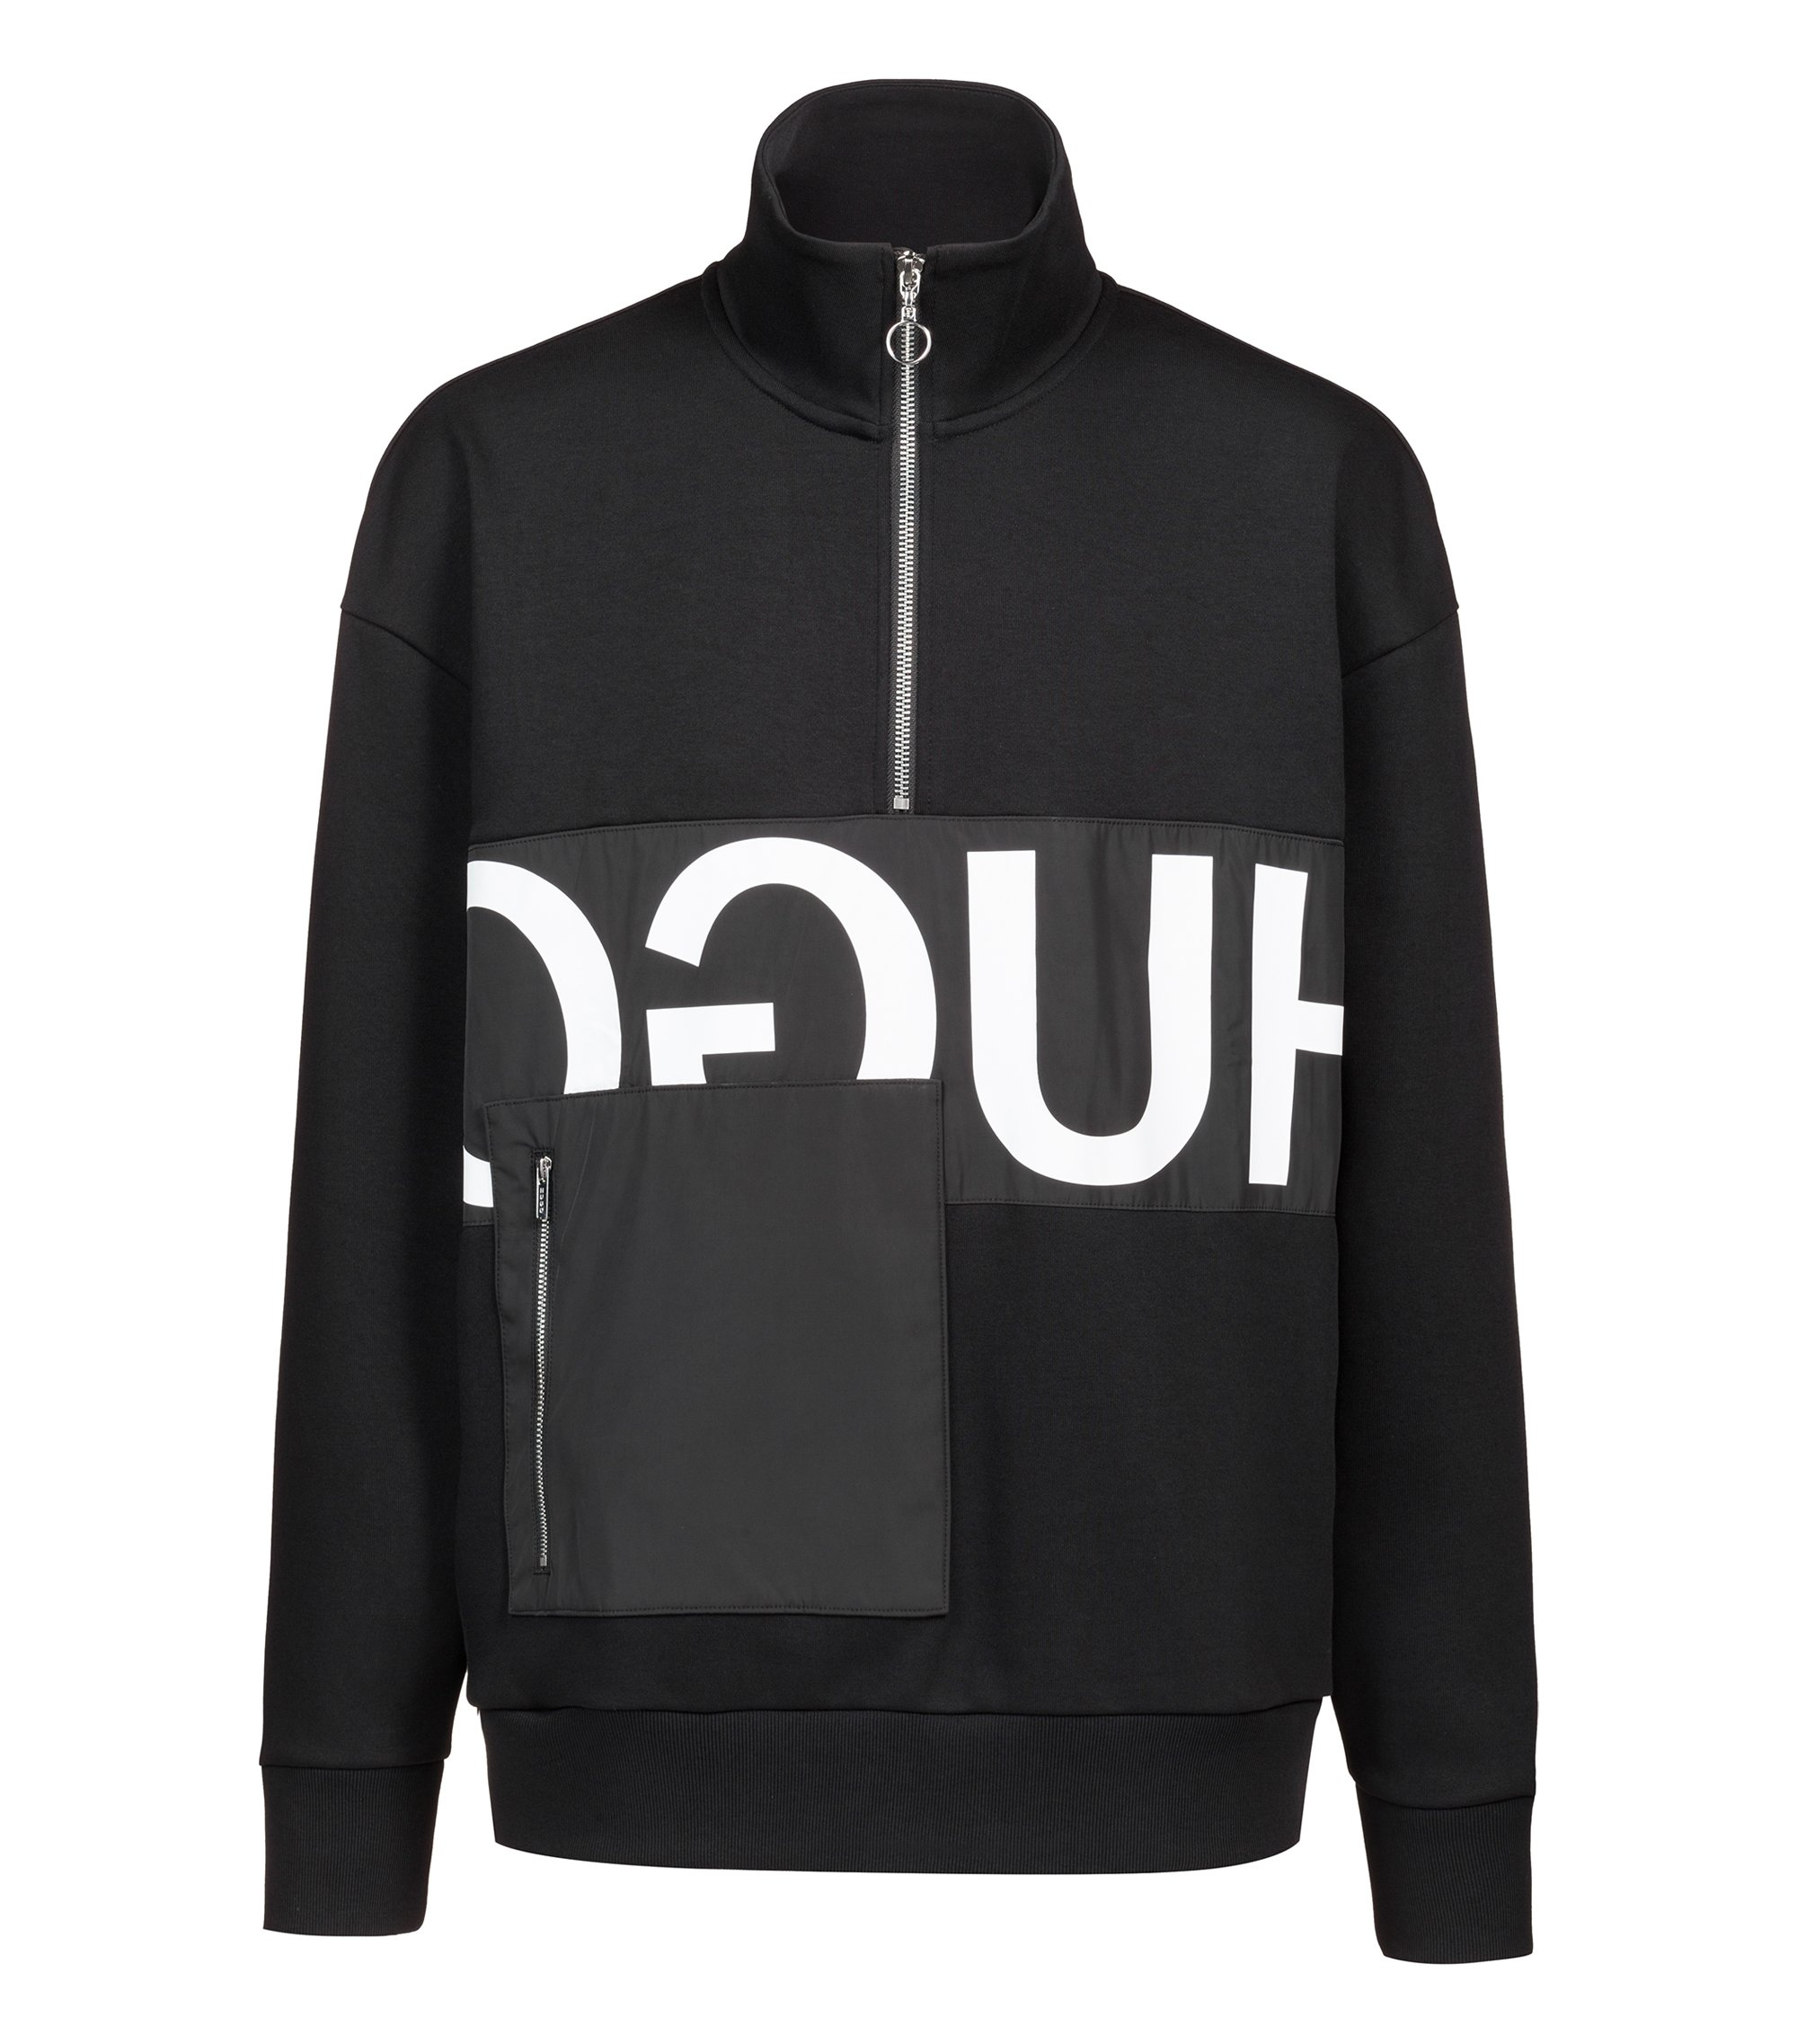 Oversized-fit sweatshirt with reverse logo and patch pocket, Black